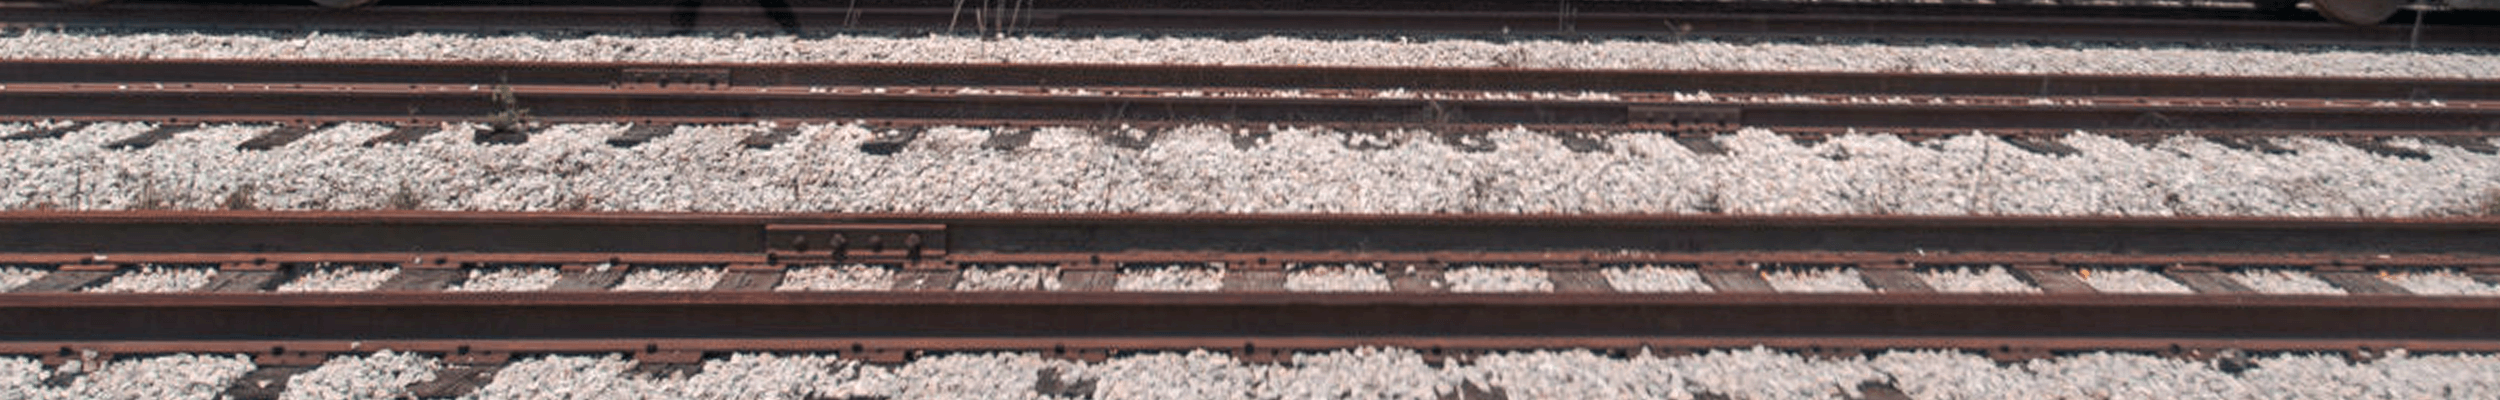 railcar industrial cleaning